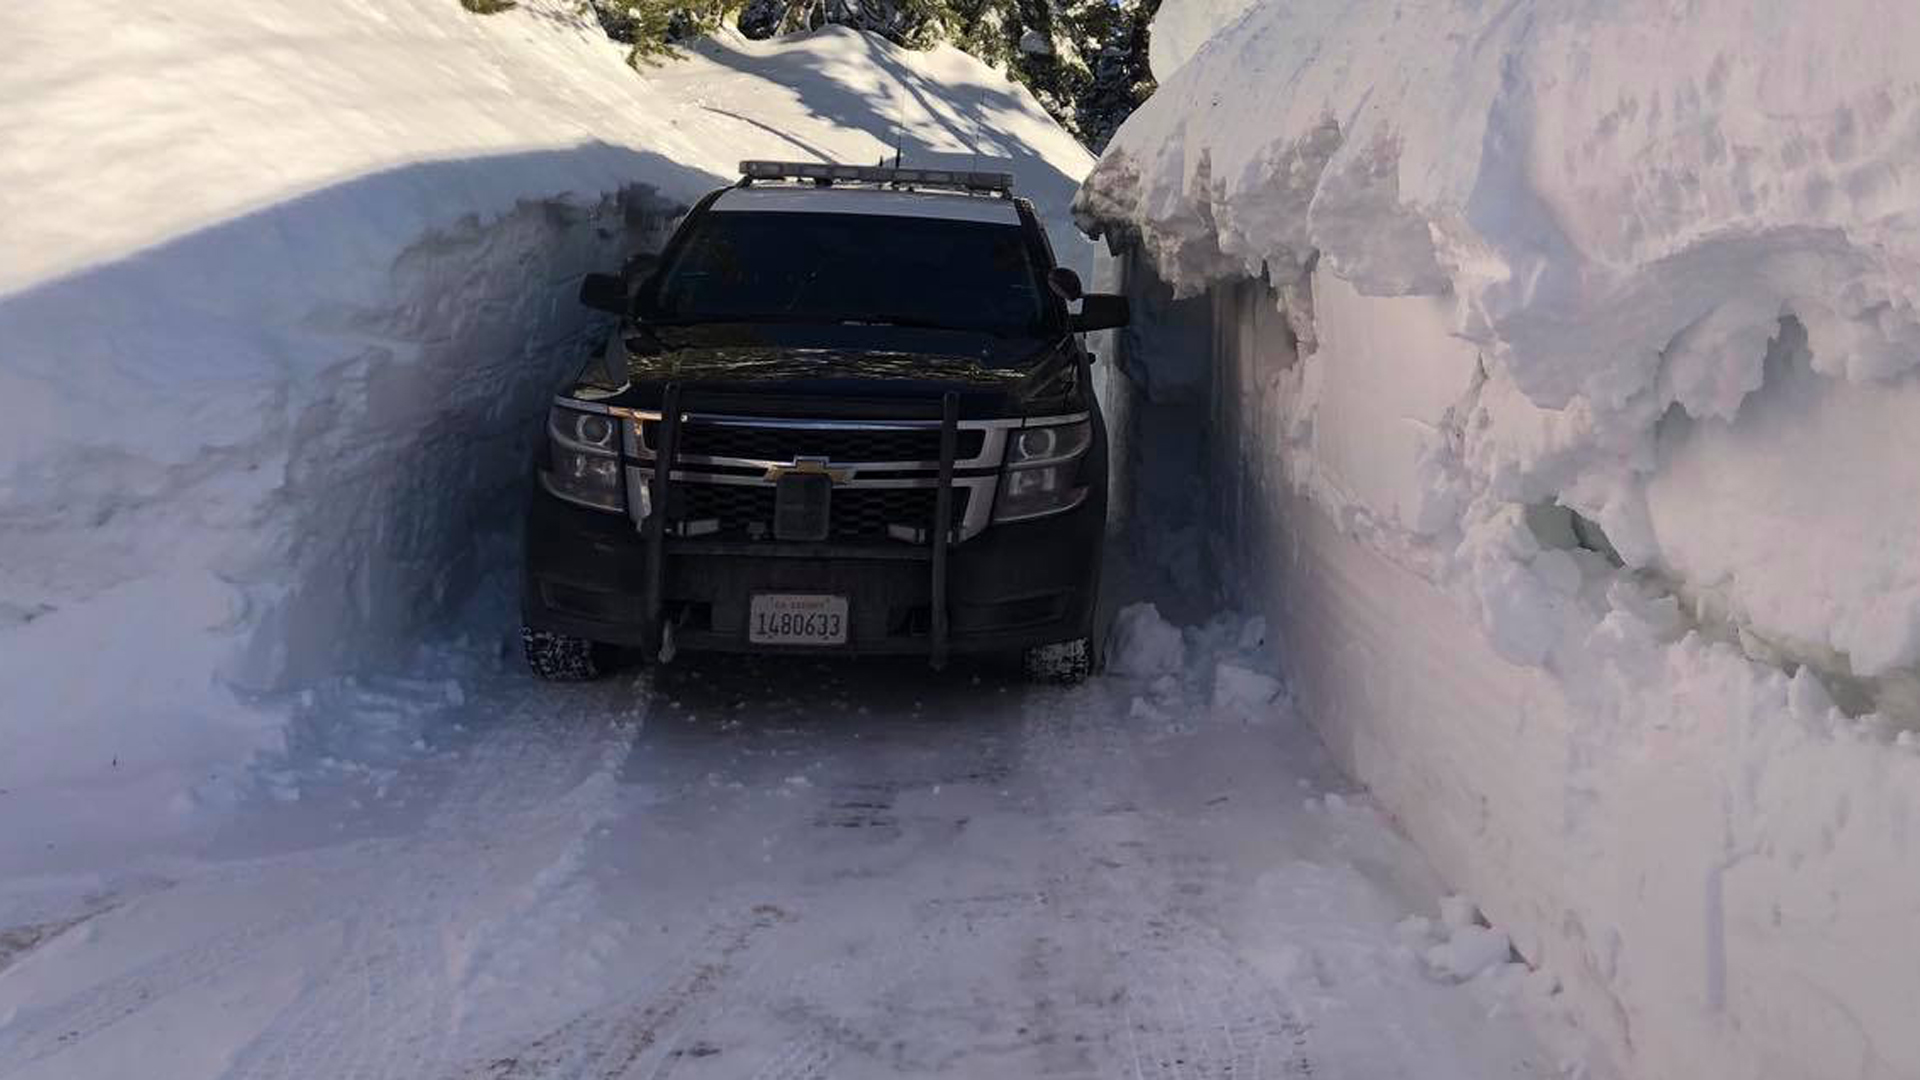 A patrol vehicle navigating a stretch of Interstate 80 in the Donner Pass area of the Sierra Nevada west of Truckee on Feb. 27, 2019. (Credit: California Highway Patrol Truckee Division/ Facebook)